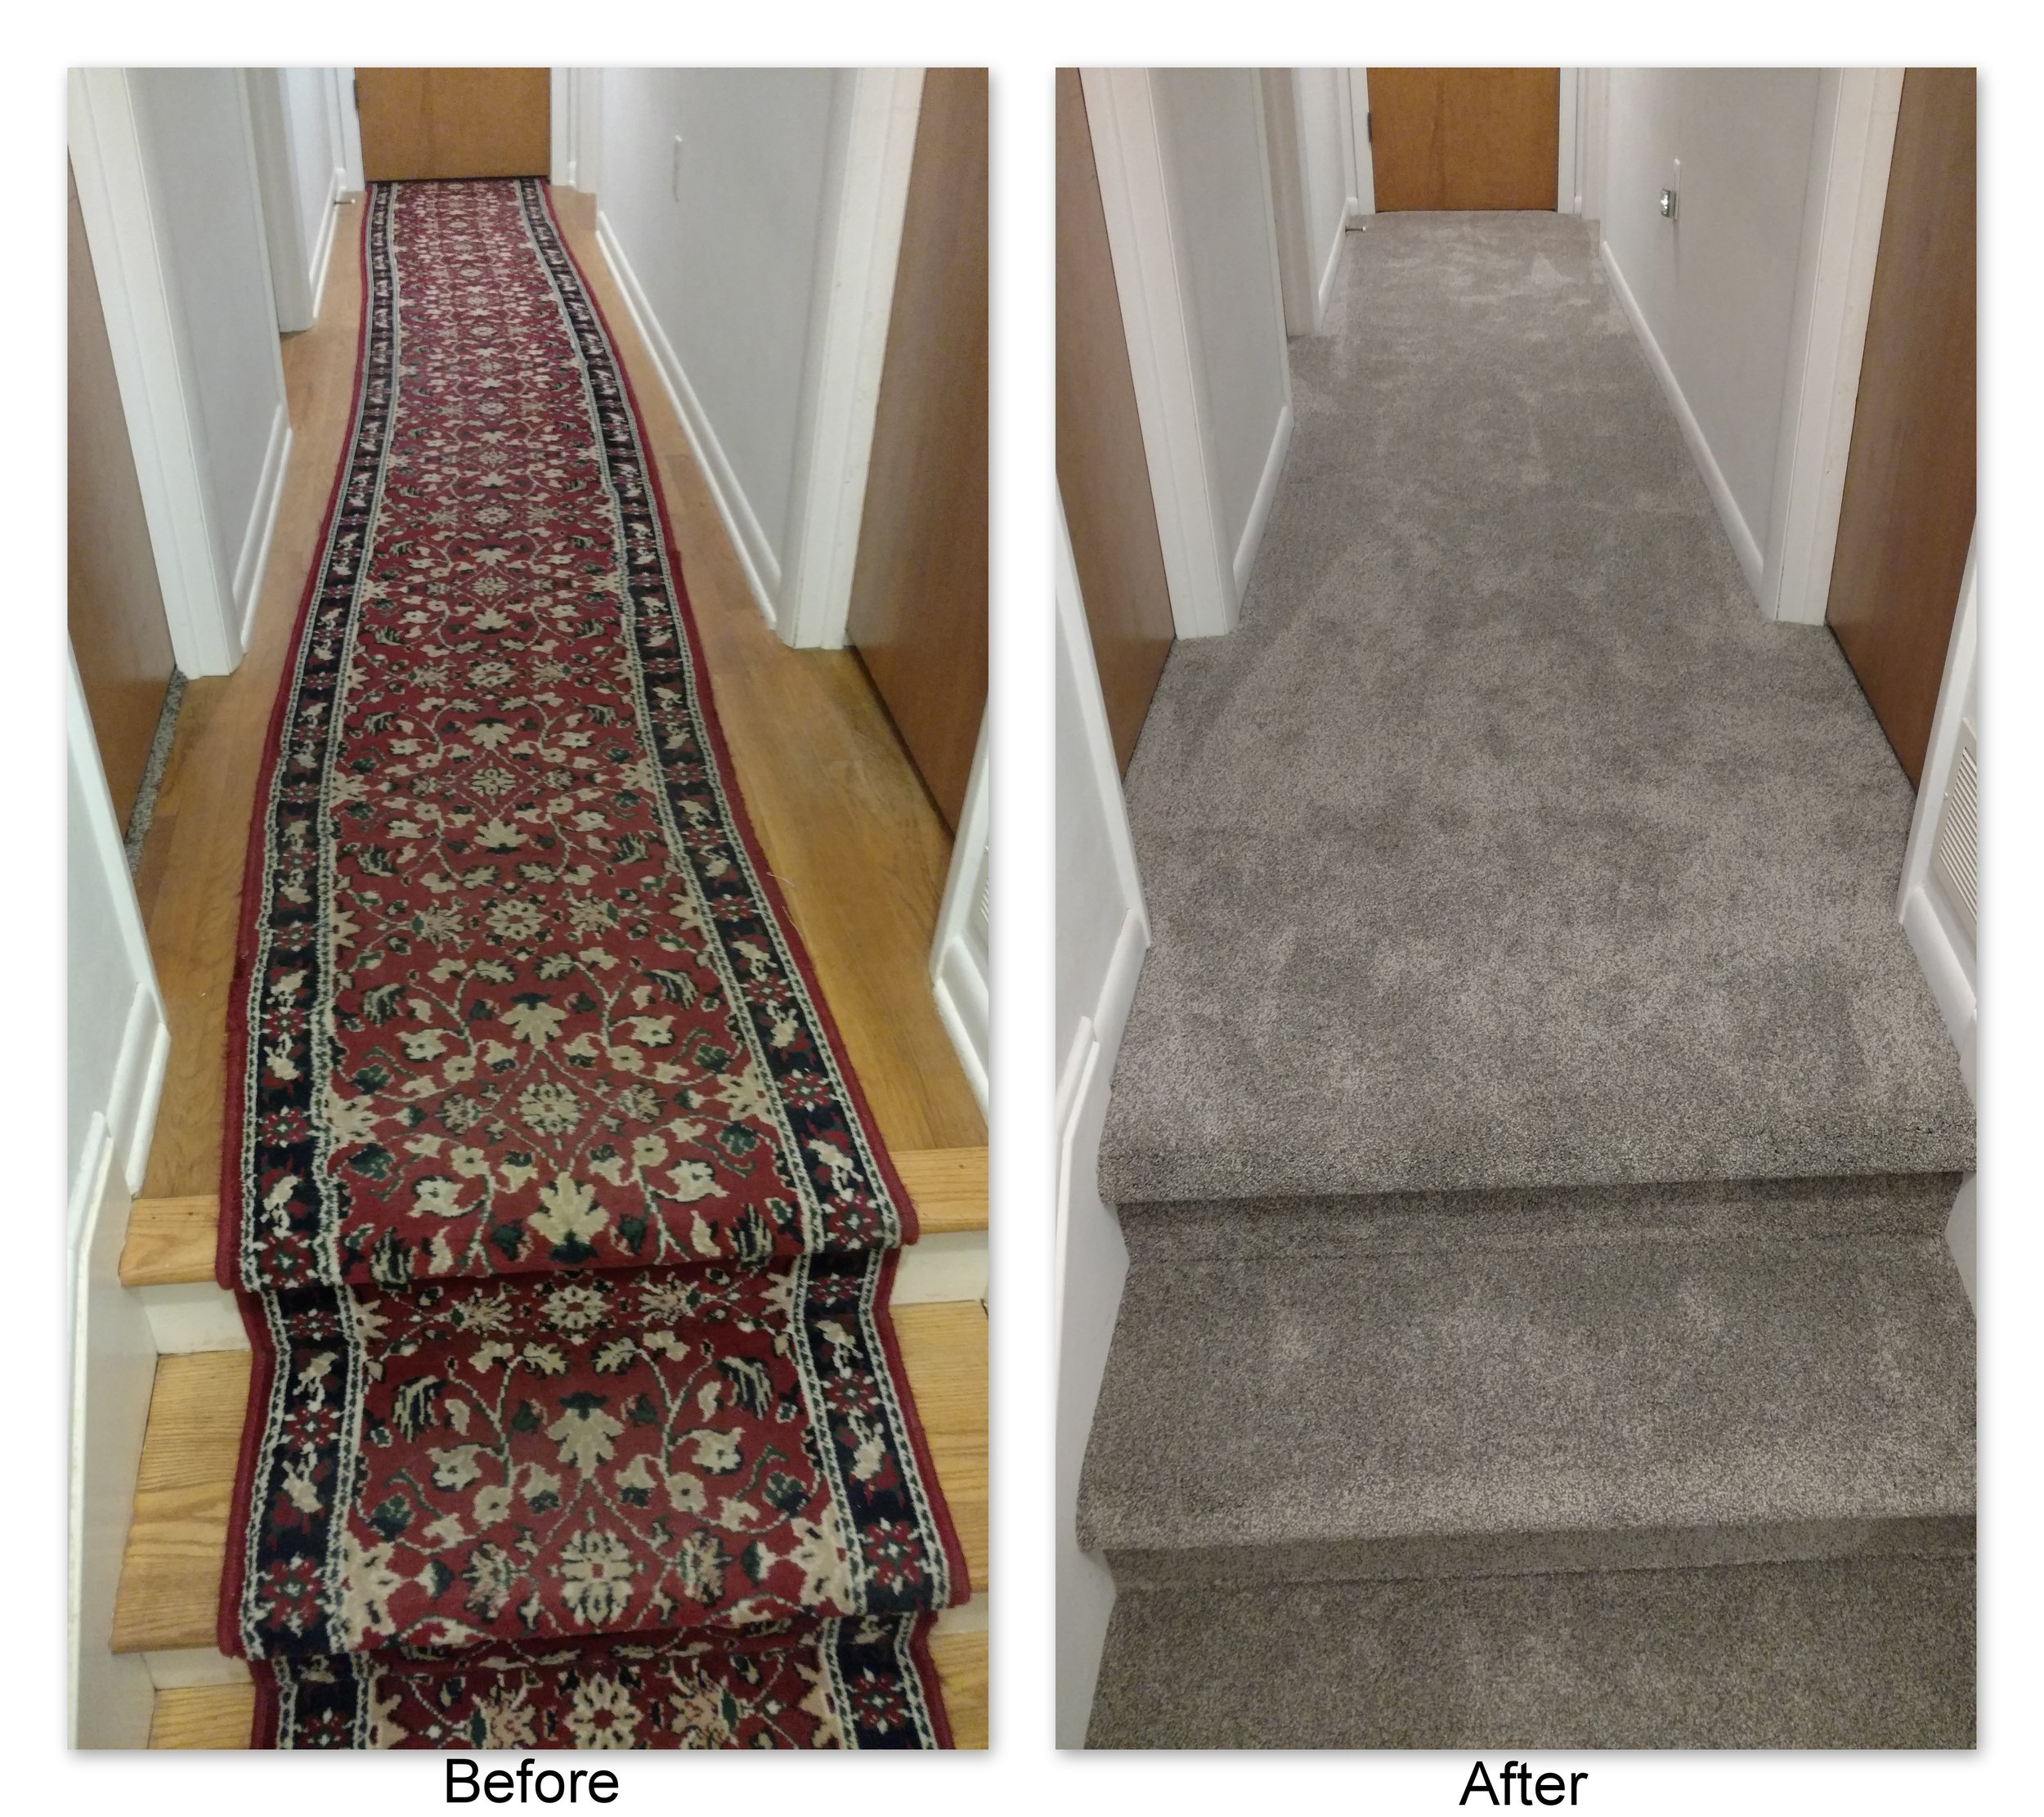 From crooked old runner to classy grey multiflec, Frank & Tonya's carpet choice of Tigressa SoftStyle Sakti Carpet in the color Sundial drastically updated their hall to a modern look.